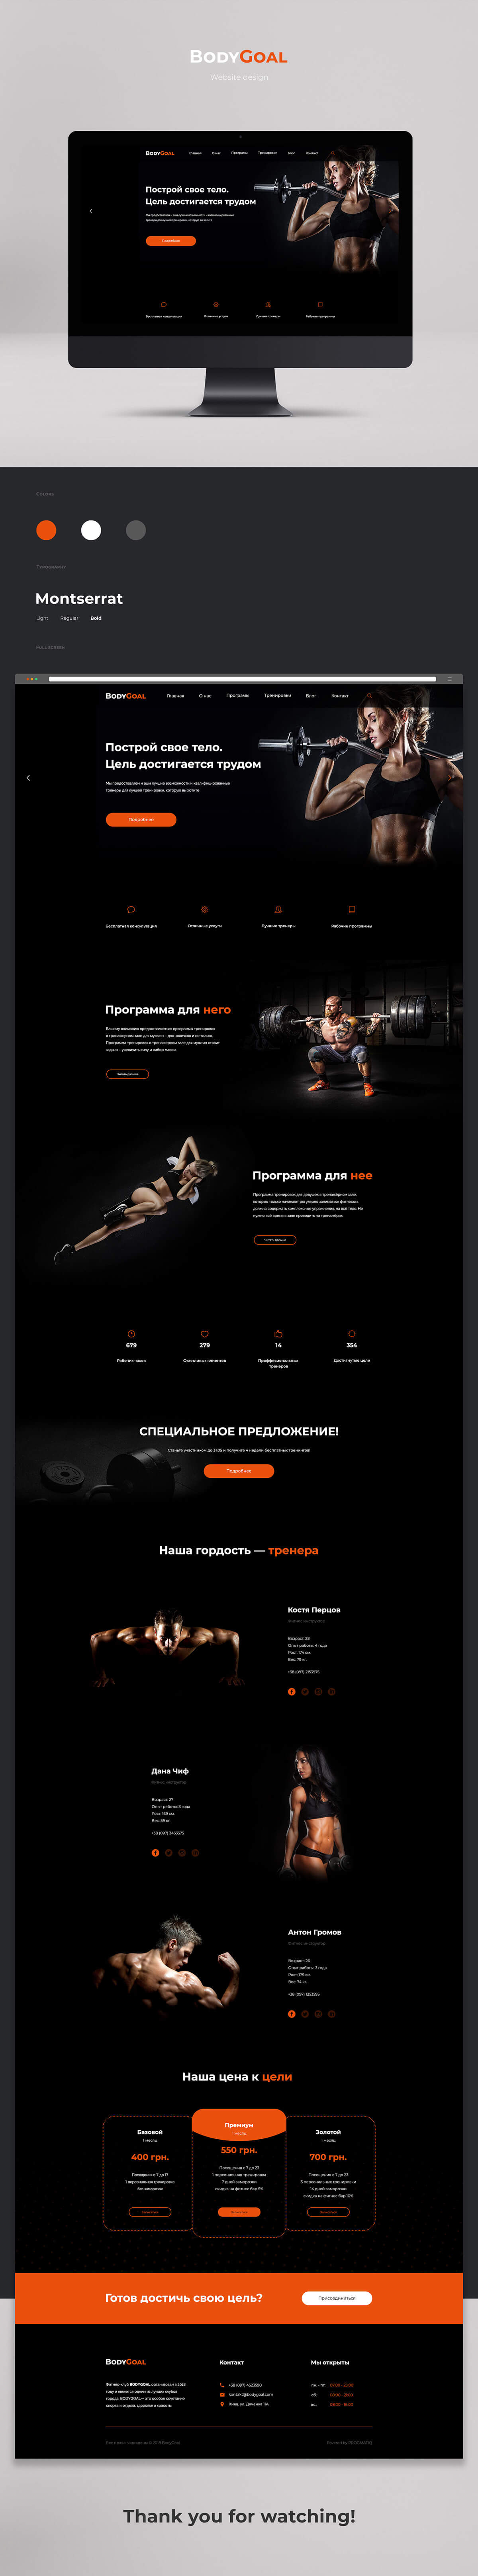 BodyGoal website design